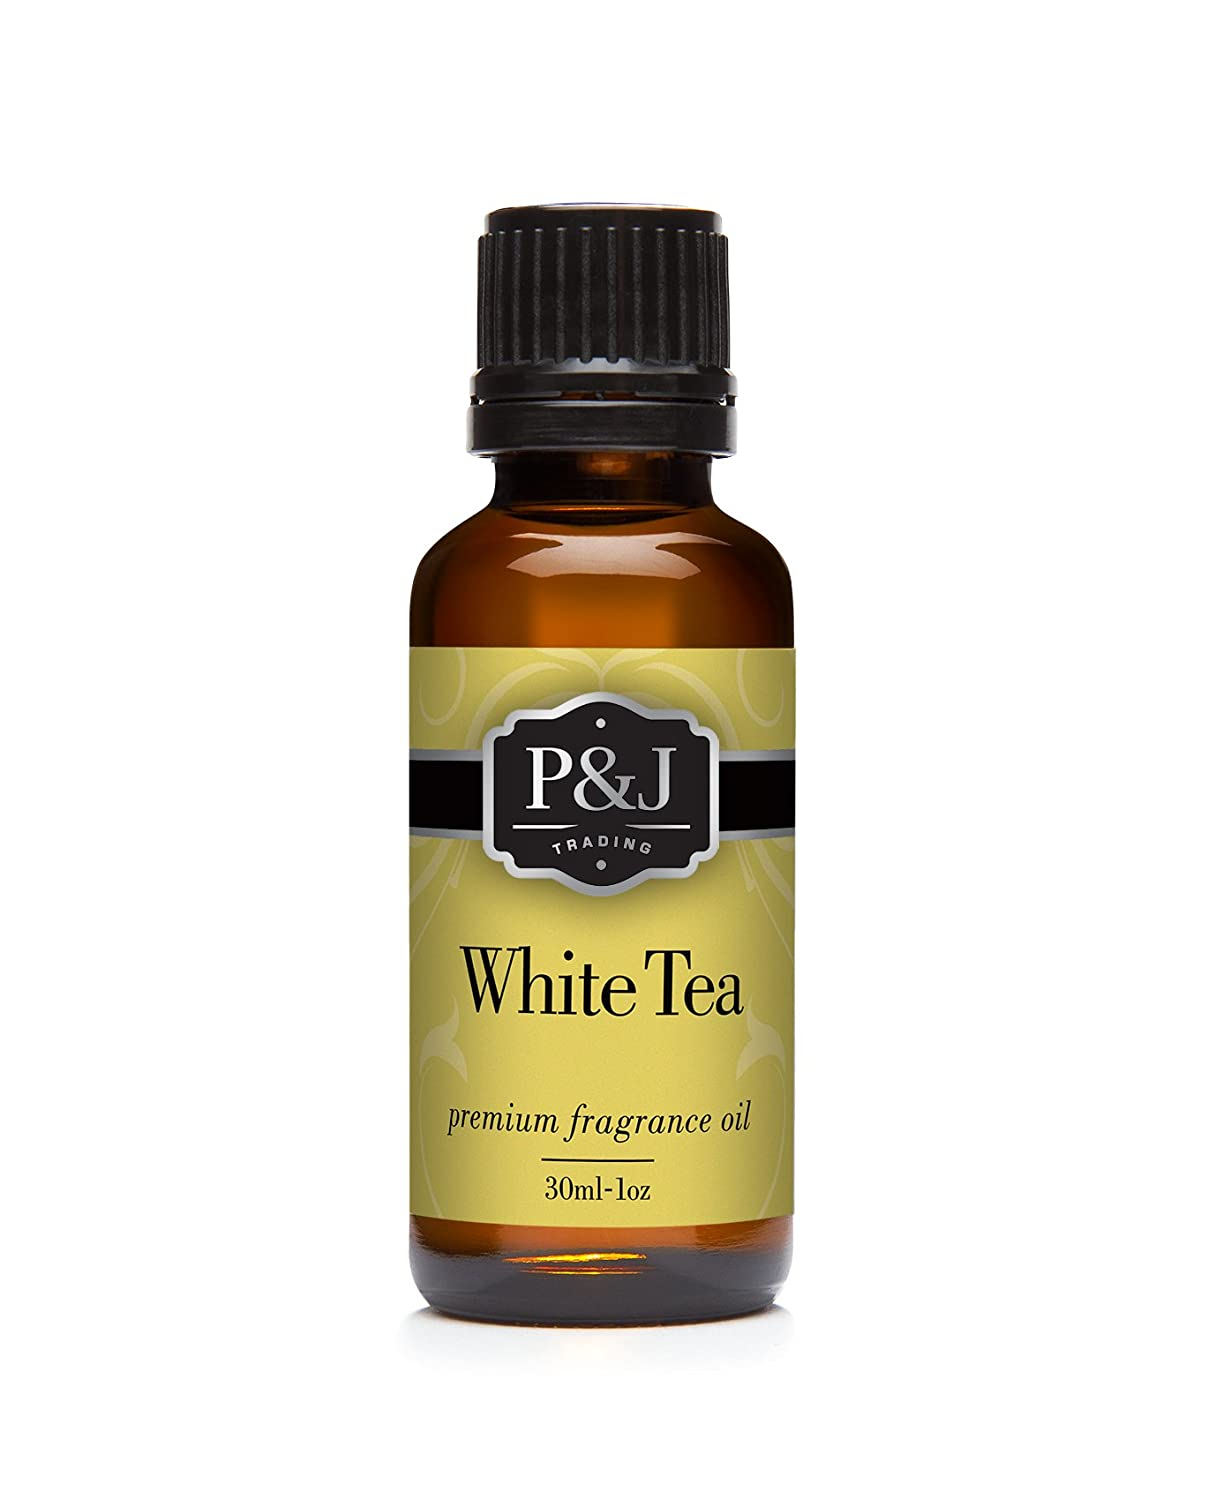 White Tea Fragrance Oil - Premium Grade Scented Oil - 30ml